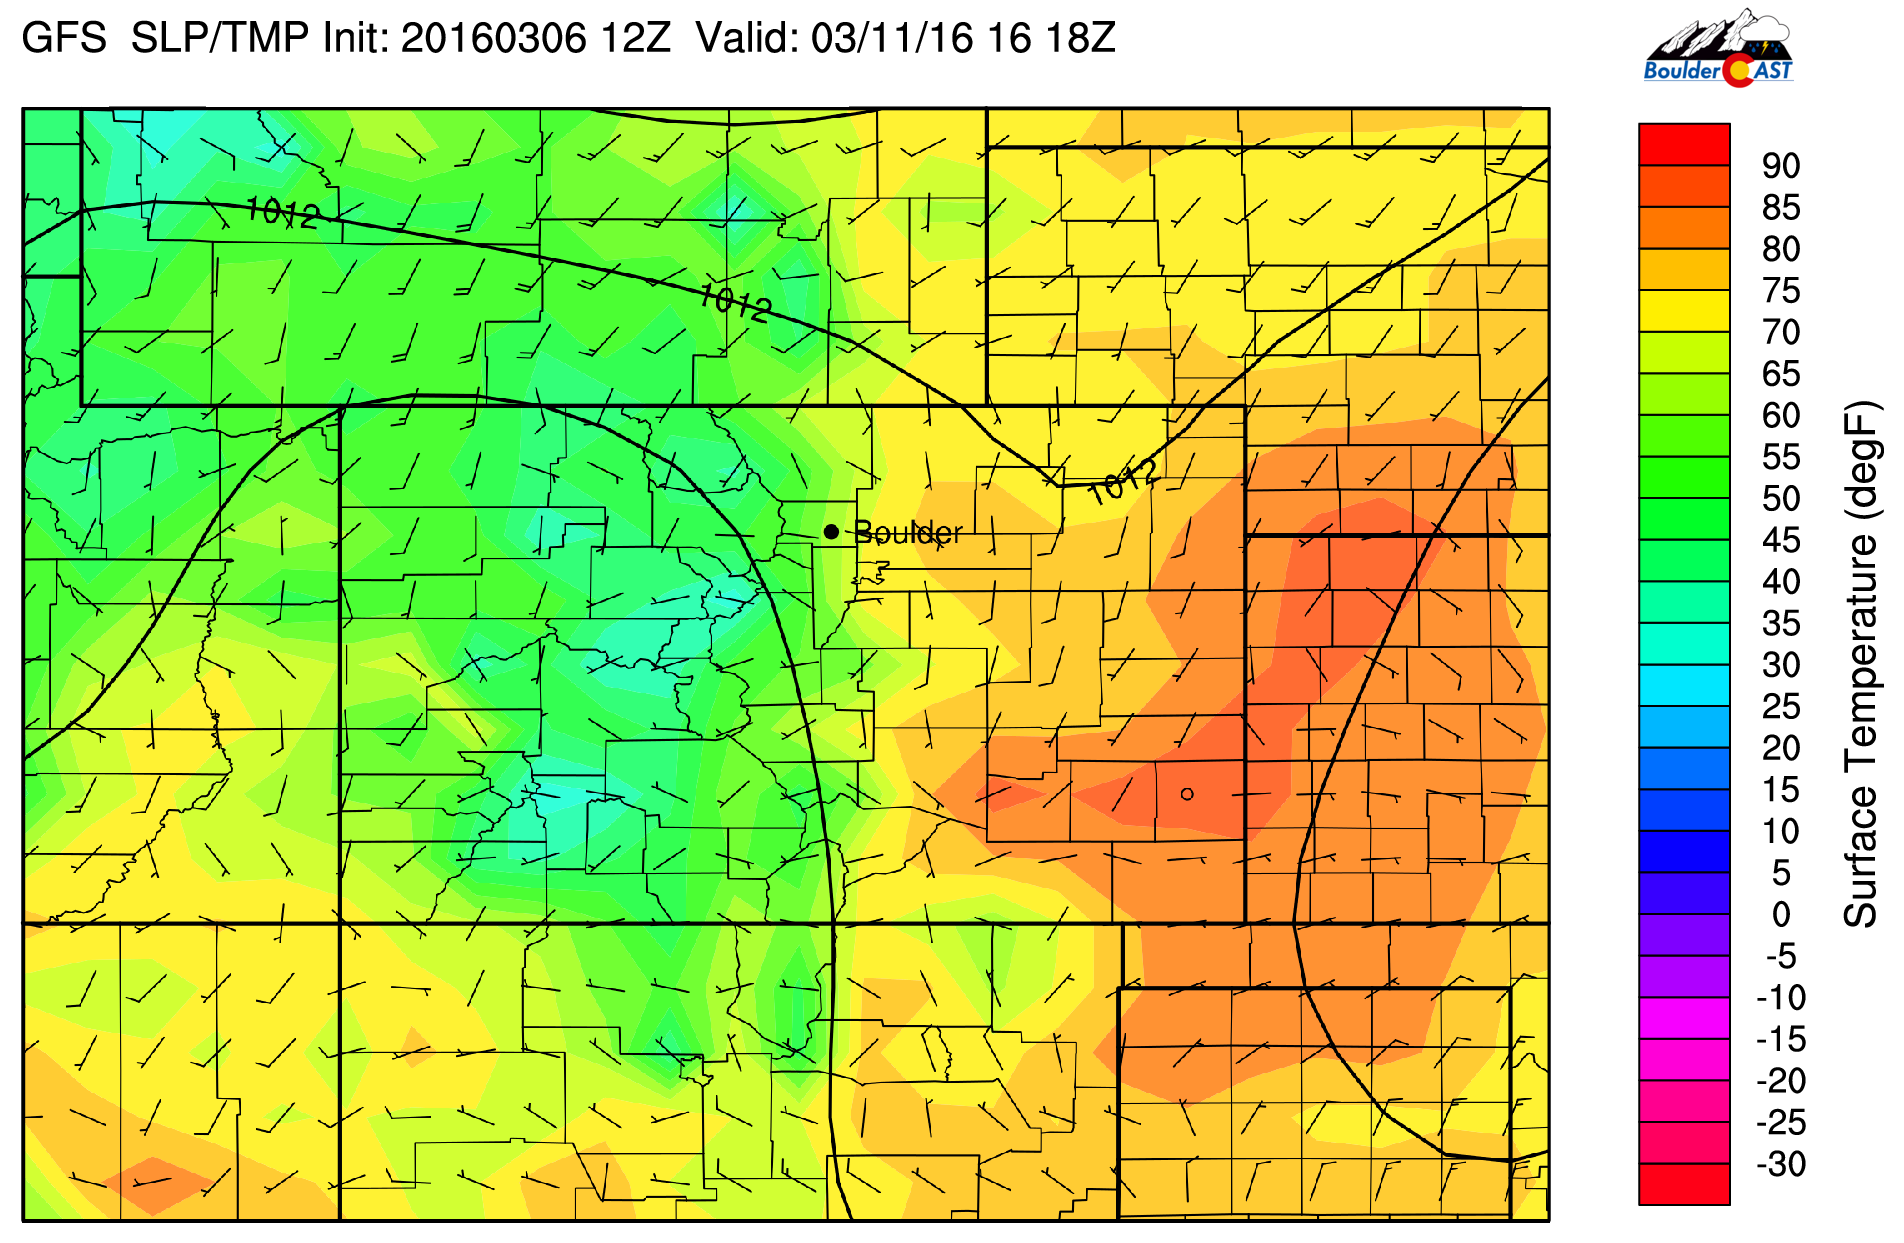 GFS surface temperature forecast for Friday